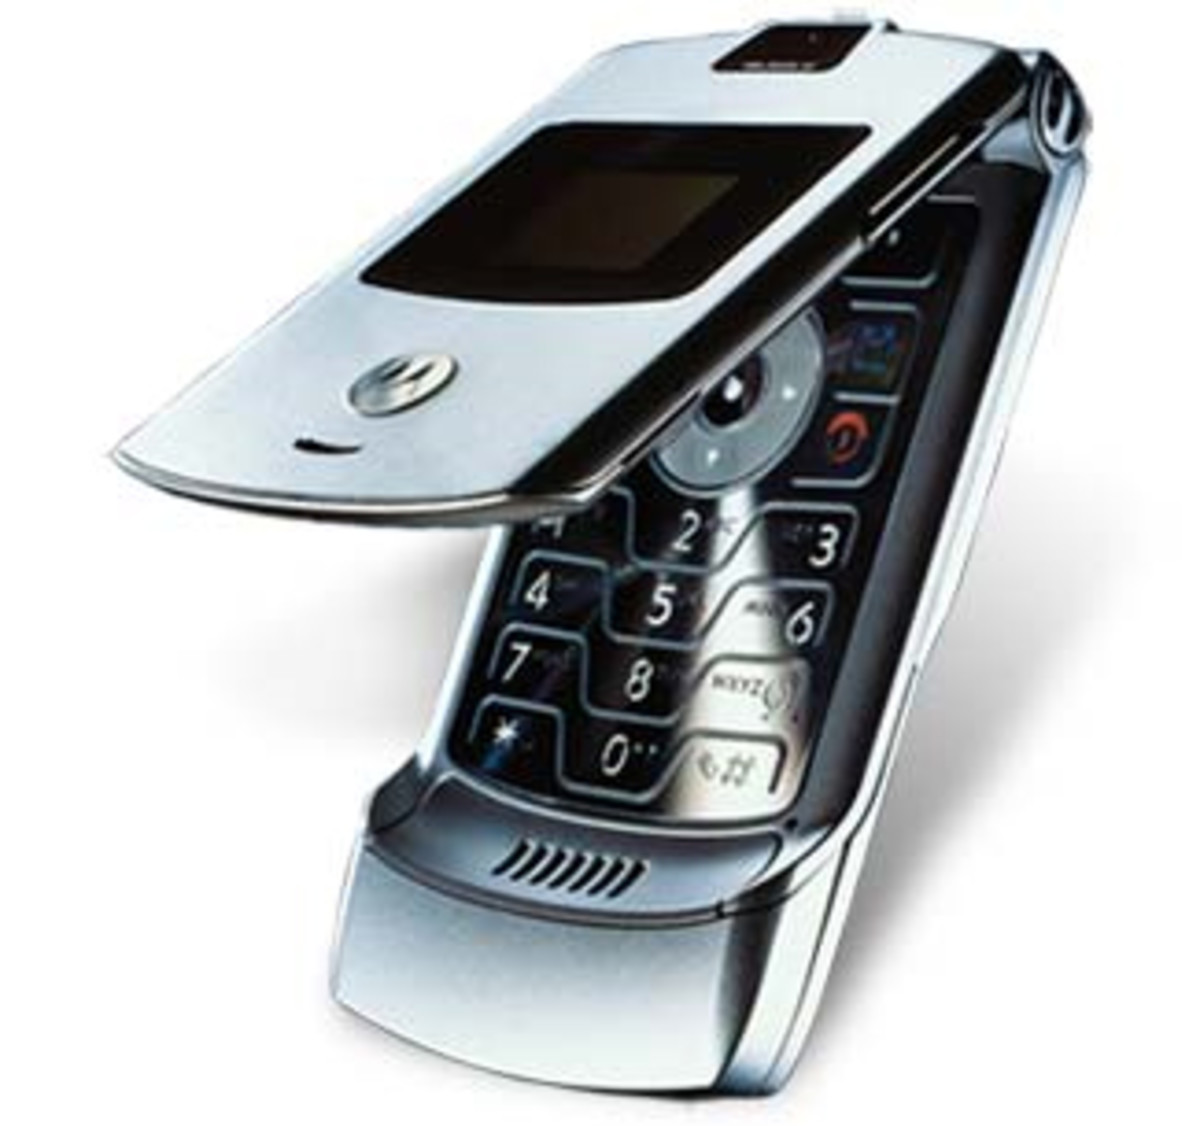 How to Send Free SMS or MMS Text Messages